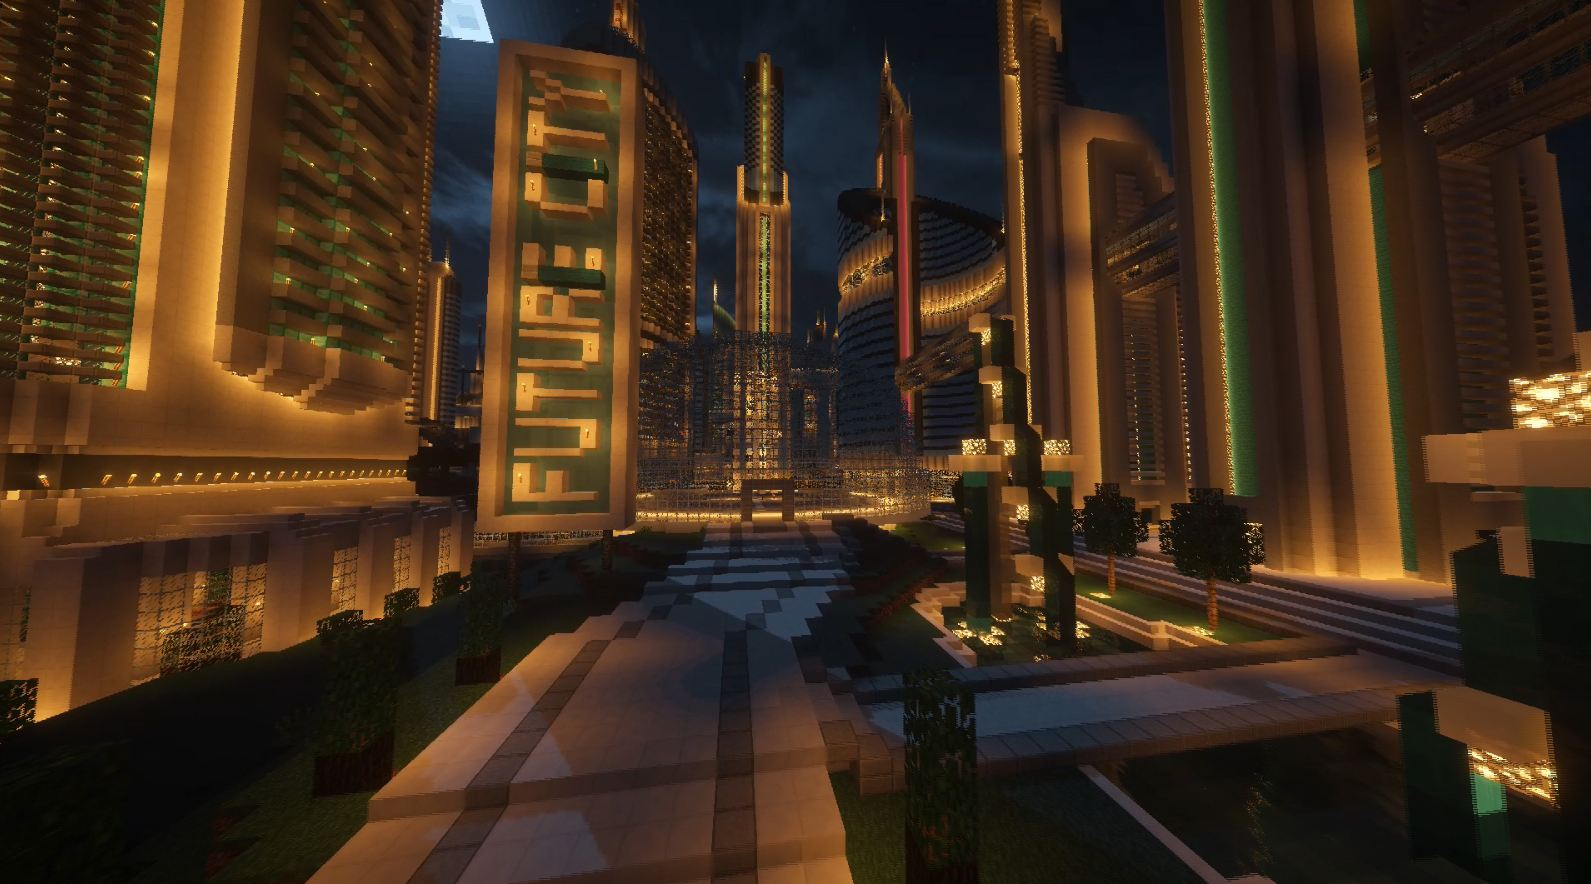 minecraft map future city 3.0 ville de nuit